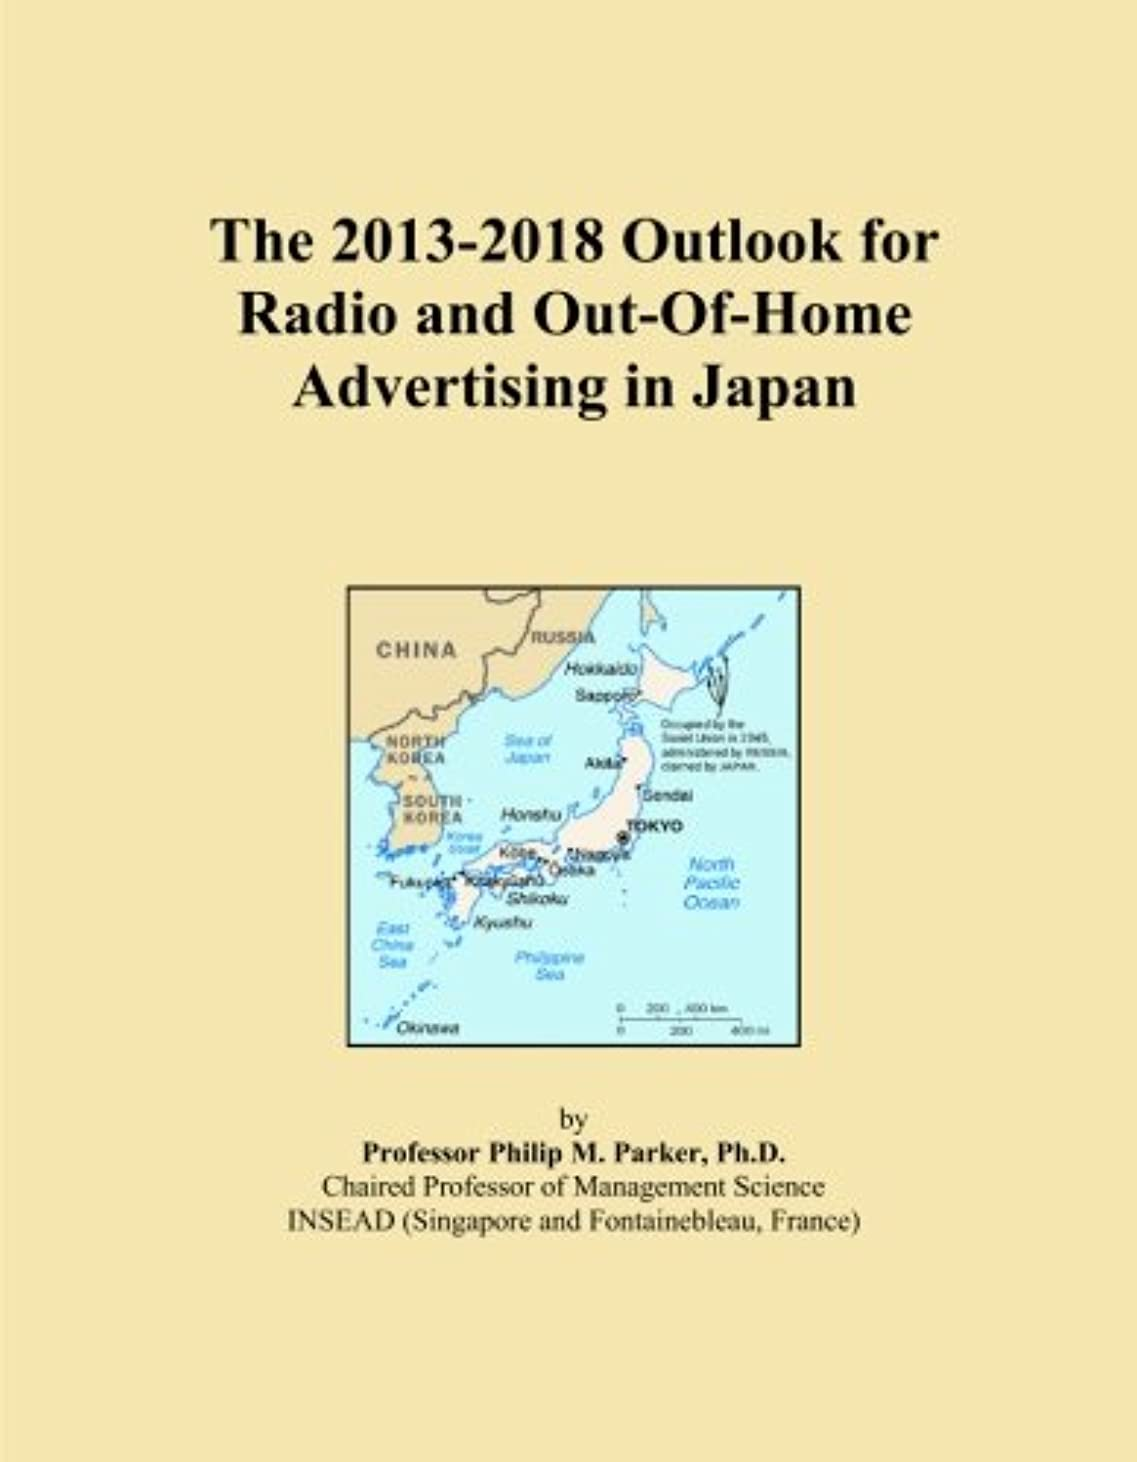 精通した損なう袋The 2013-2018 Outlook for Radio and Out-Of-Home Advertising in Japan